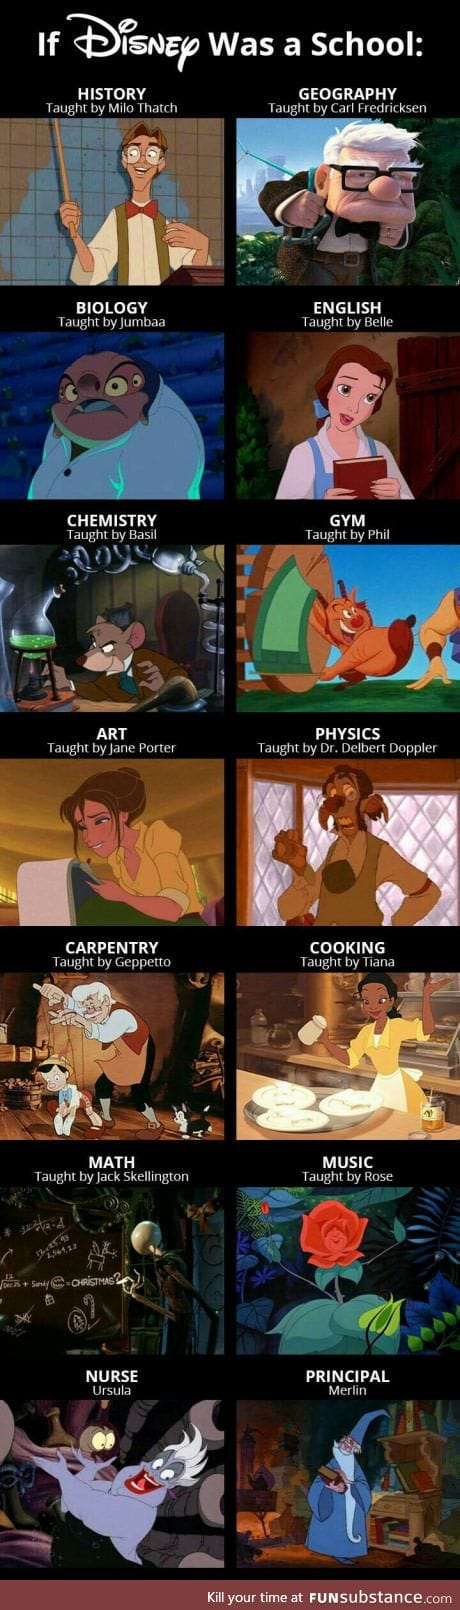 If Disney was a school... I totally would to go there!